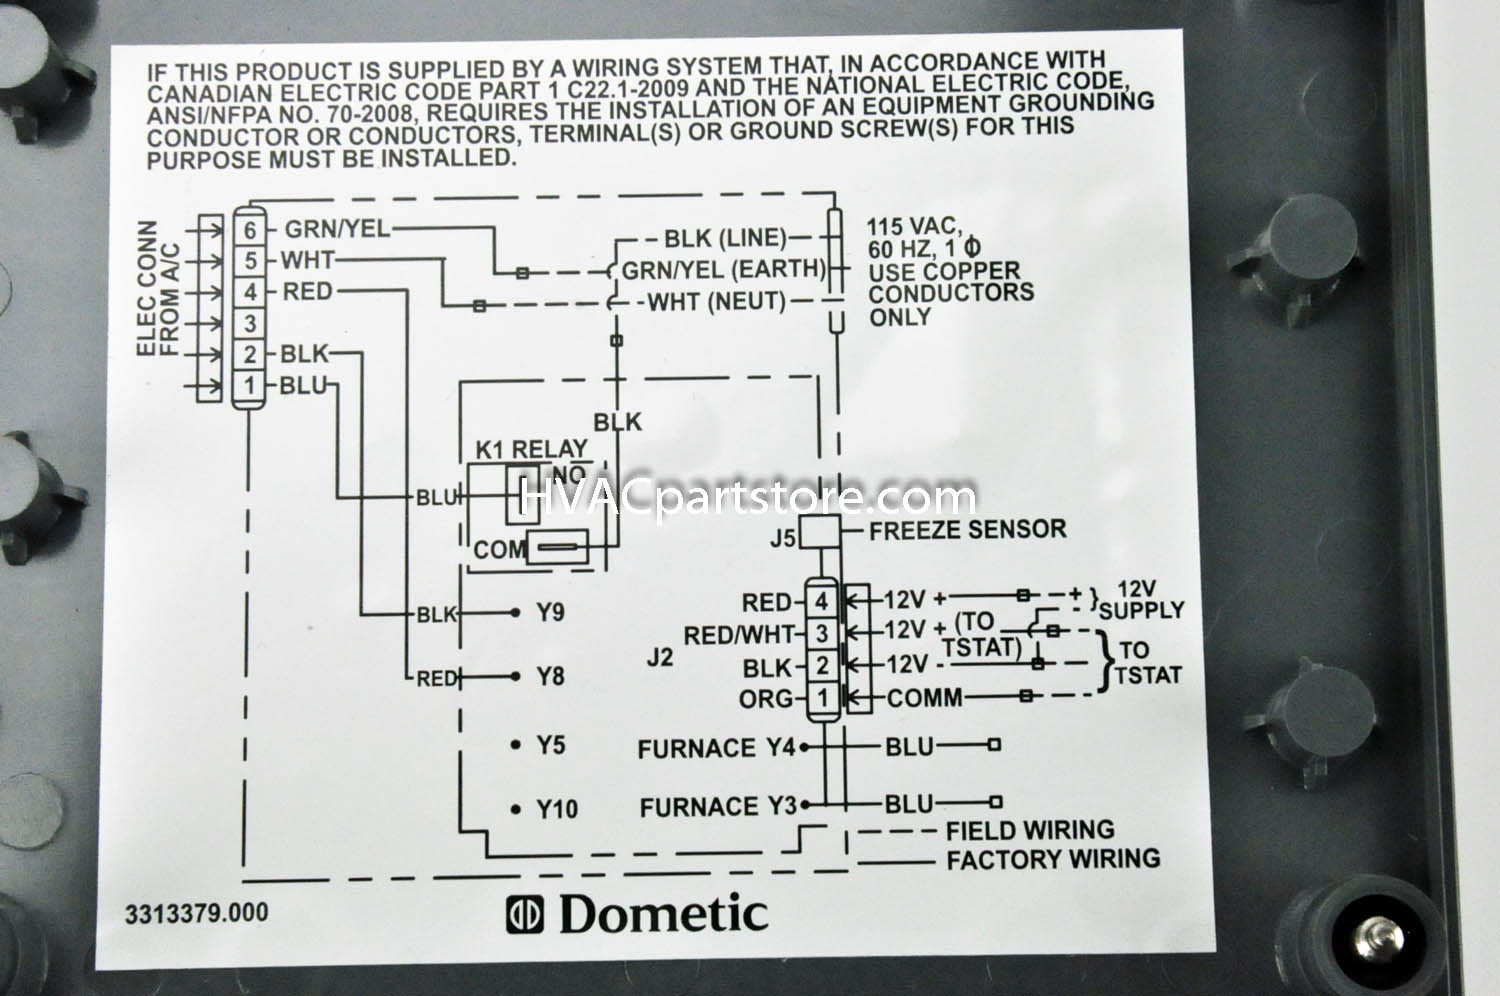 dometic rv thermostat wiring diagram Collection-Samples Duo therm thermostat Wiring Diagram In Dometic Rv 5-e